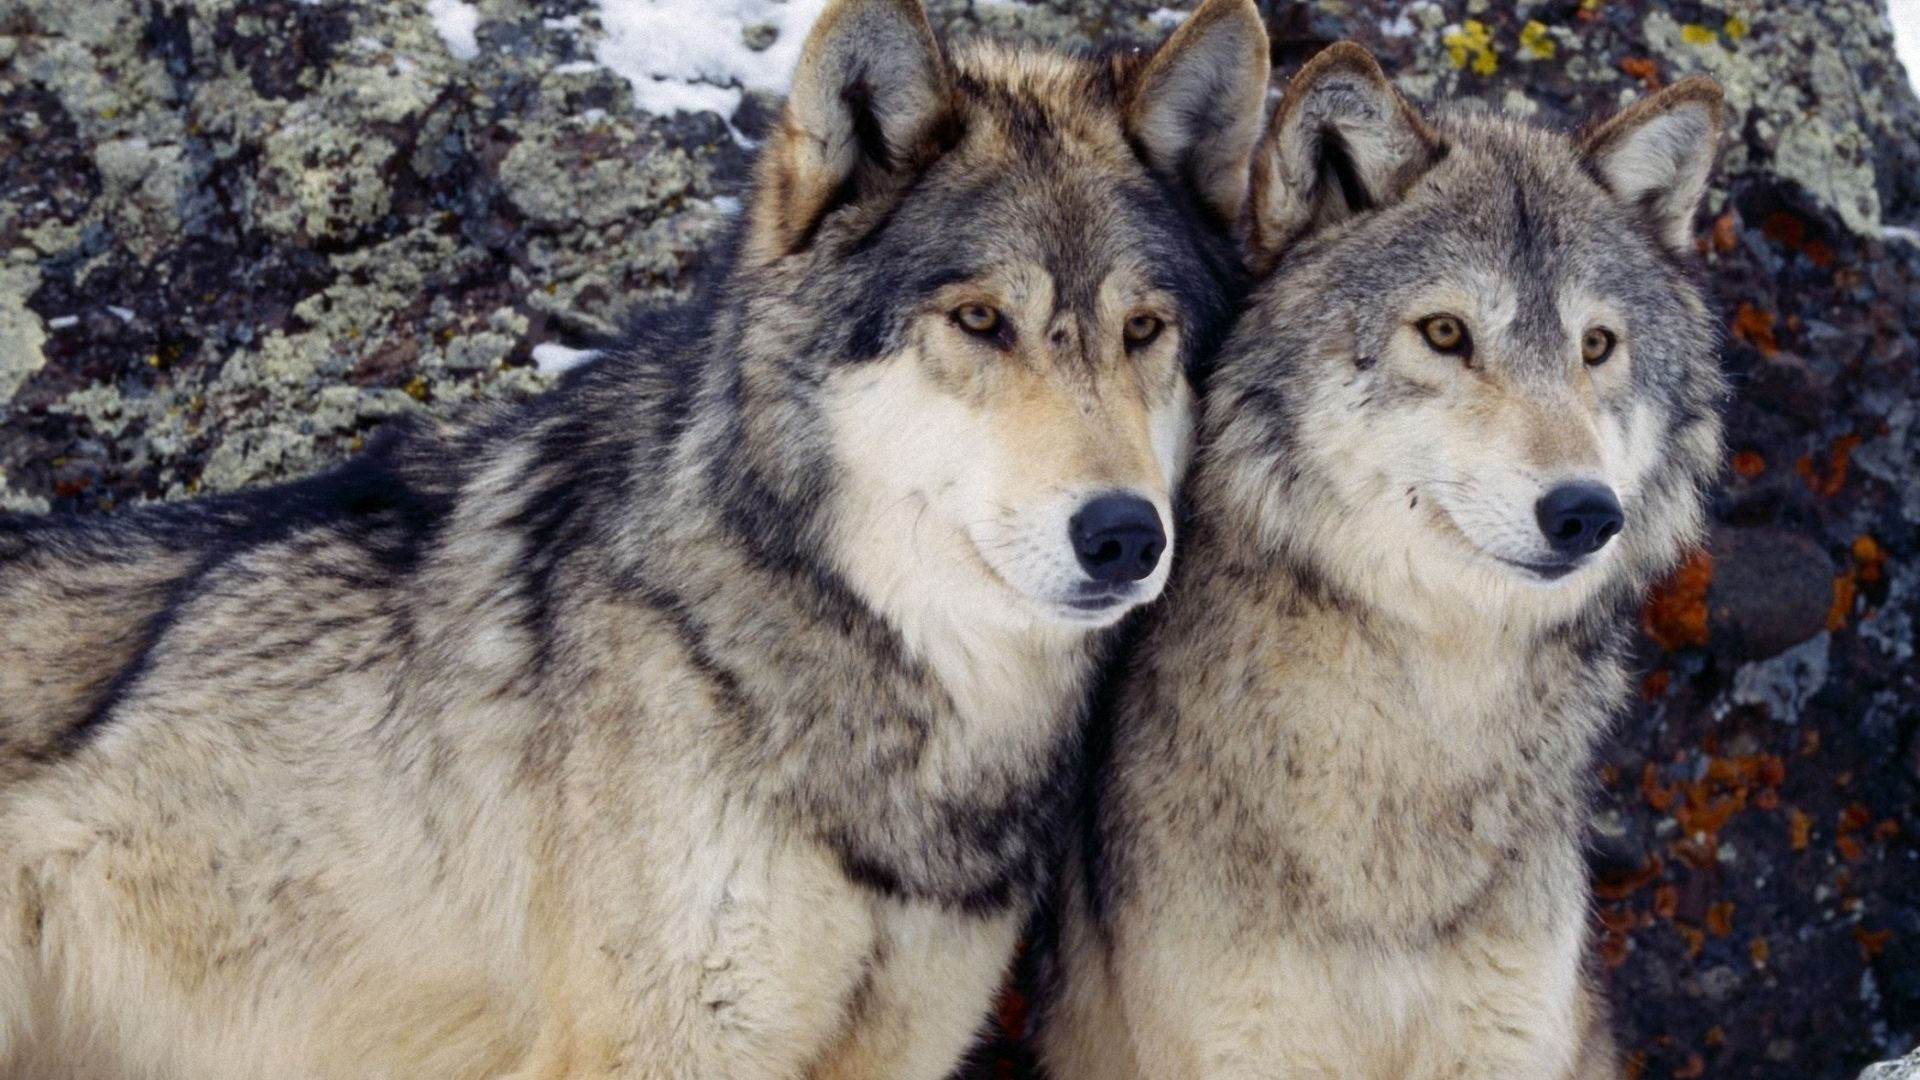 wolf-pack-wallpapers-gallery-(84-plus)-pic-wpw5011437 - juegosrev